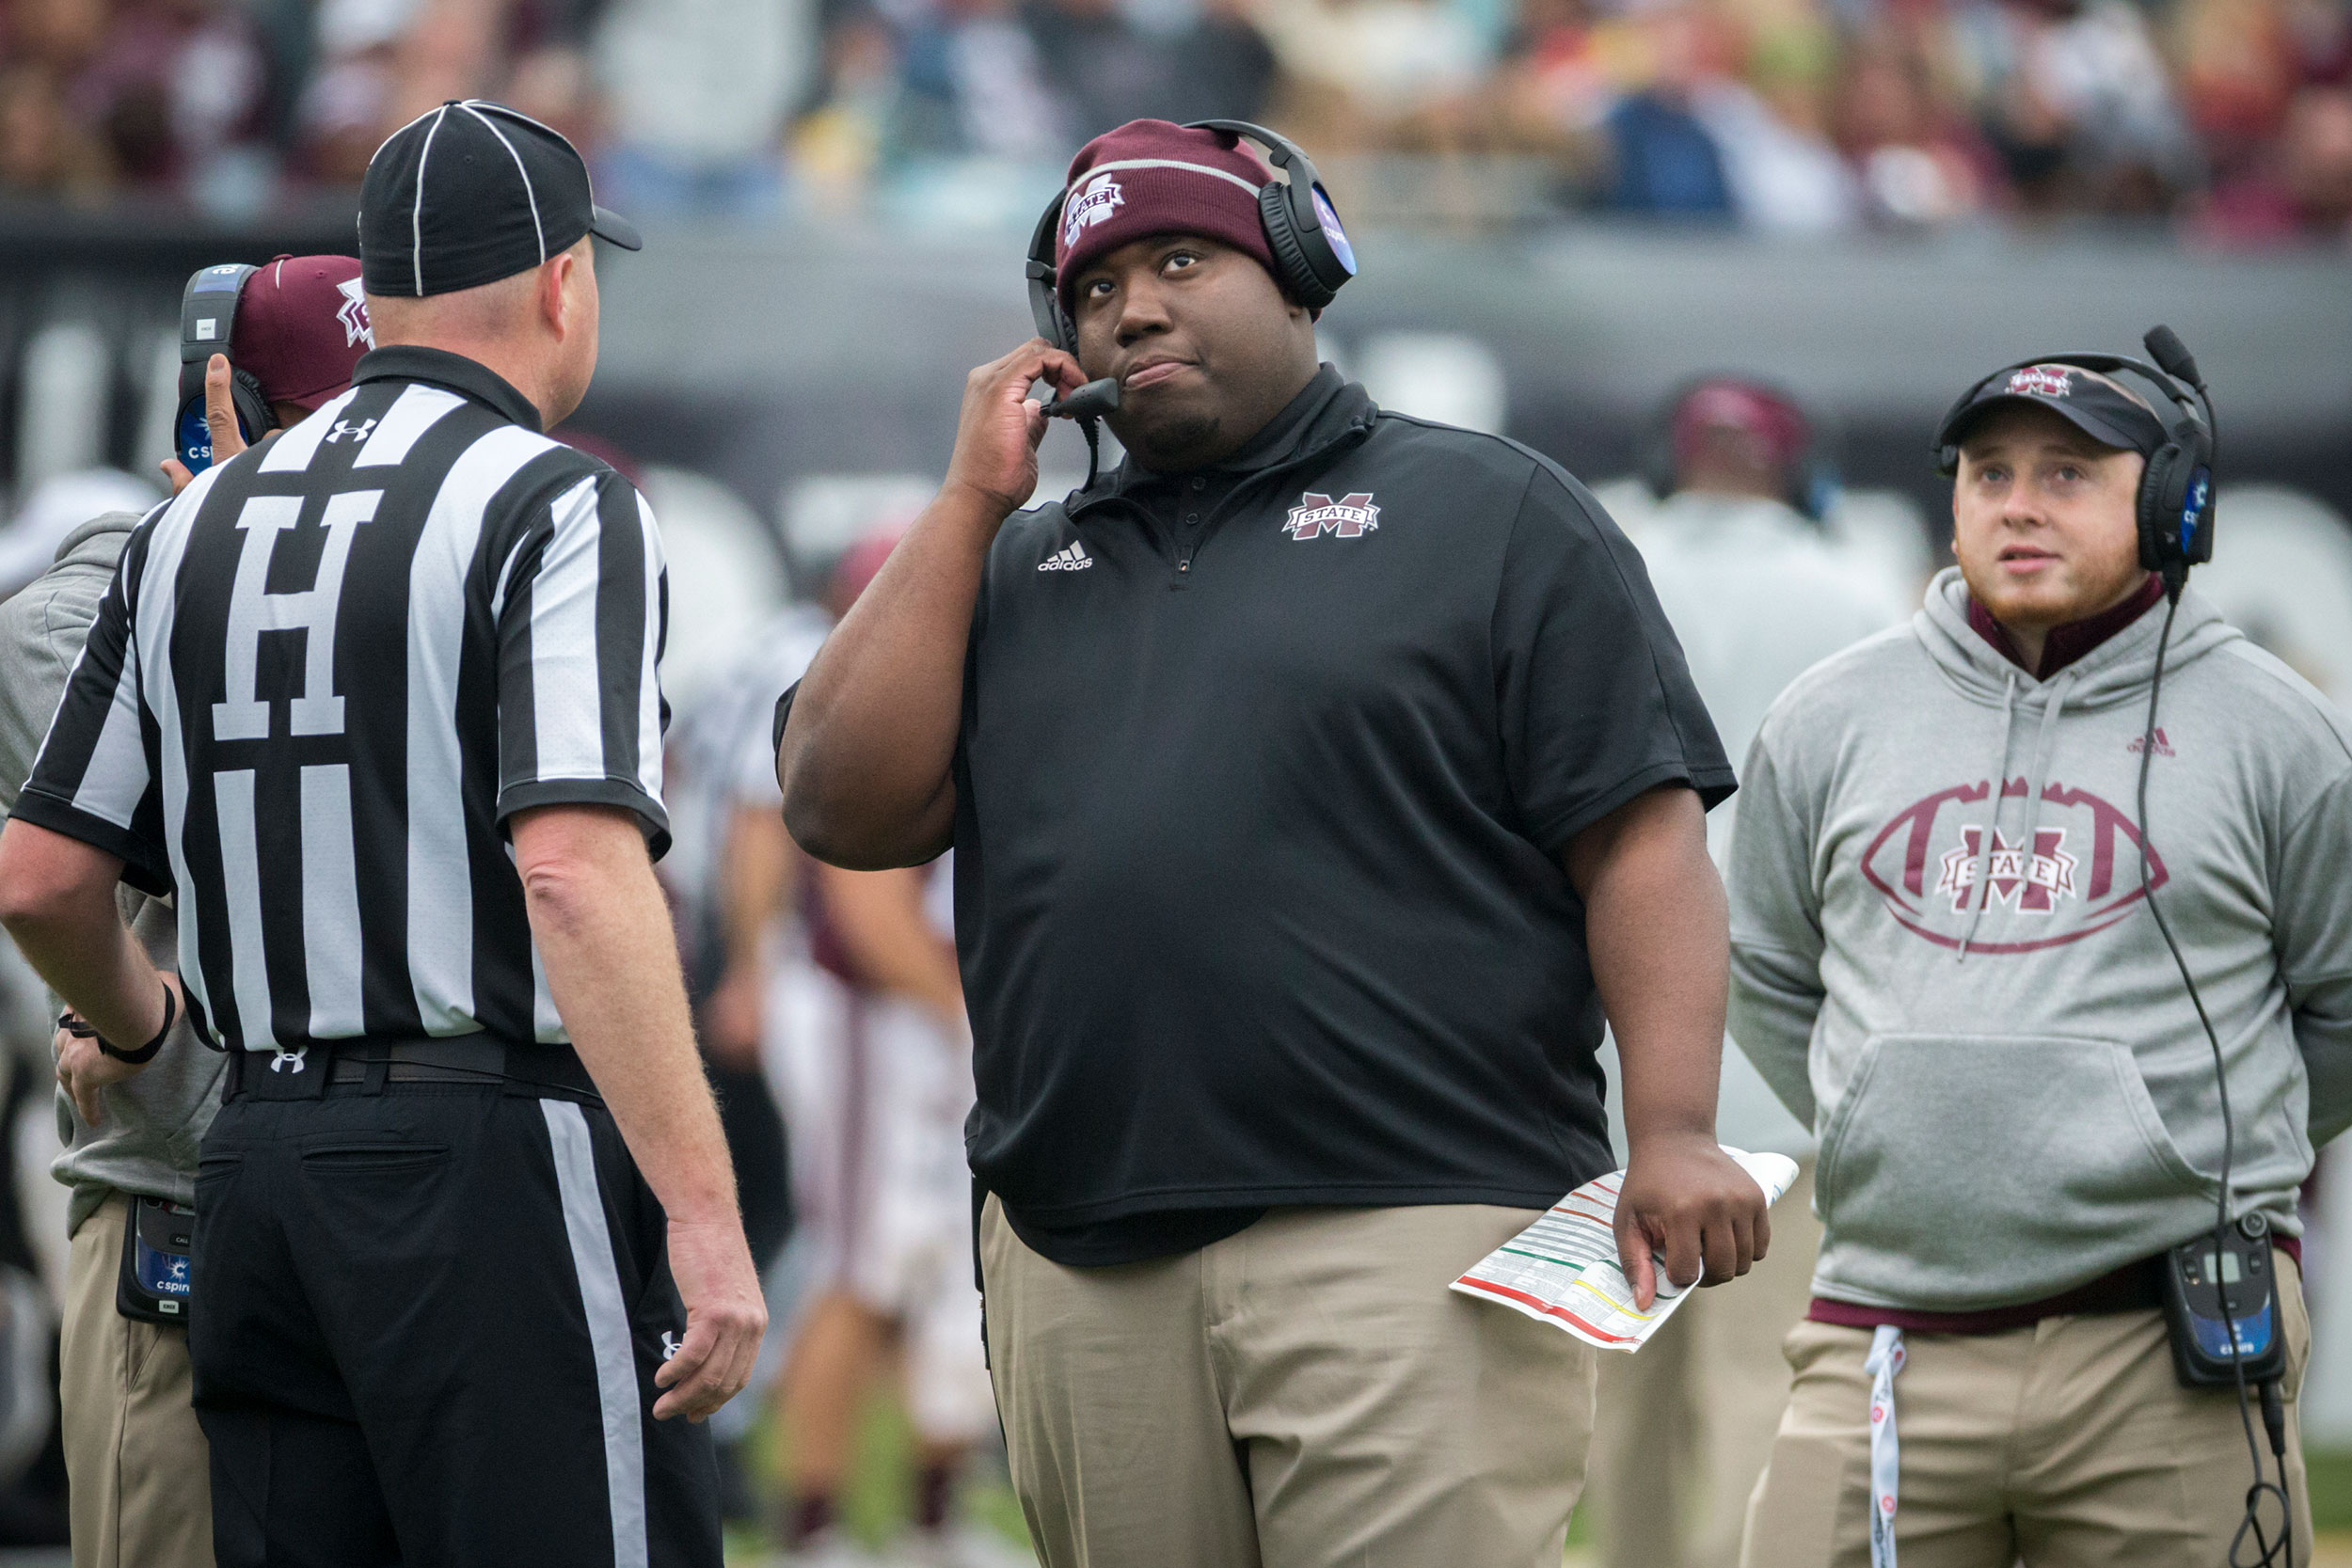 Louisiana-Lafayette assistant football coach D.J. Looney dies at 31